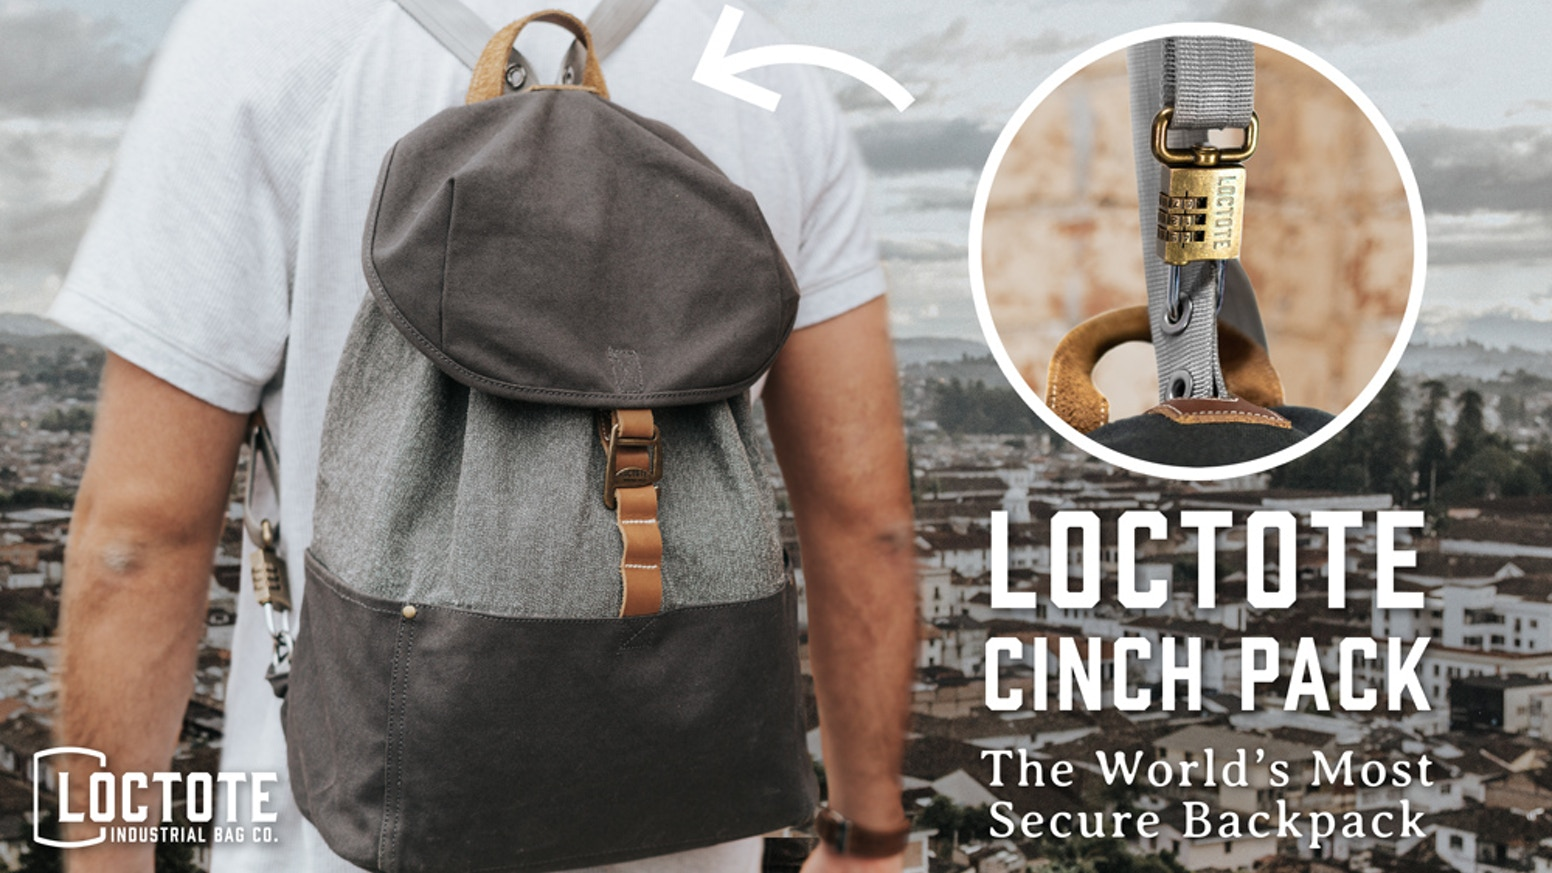 fa7778194c7fa The World s Most Secure Backpack - LOCTOTE Cinch Pack by LOCTOTE ...